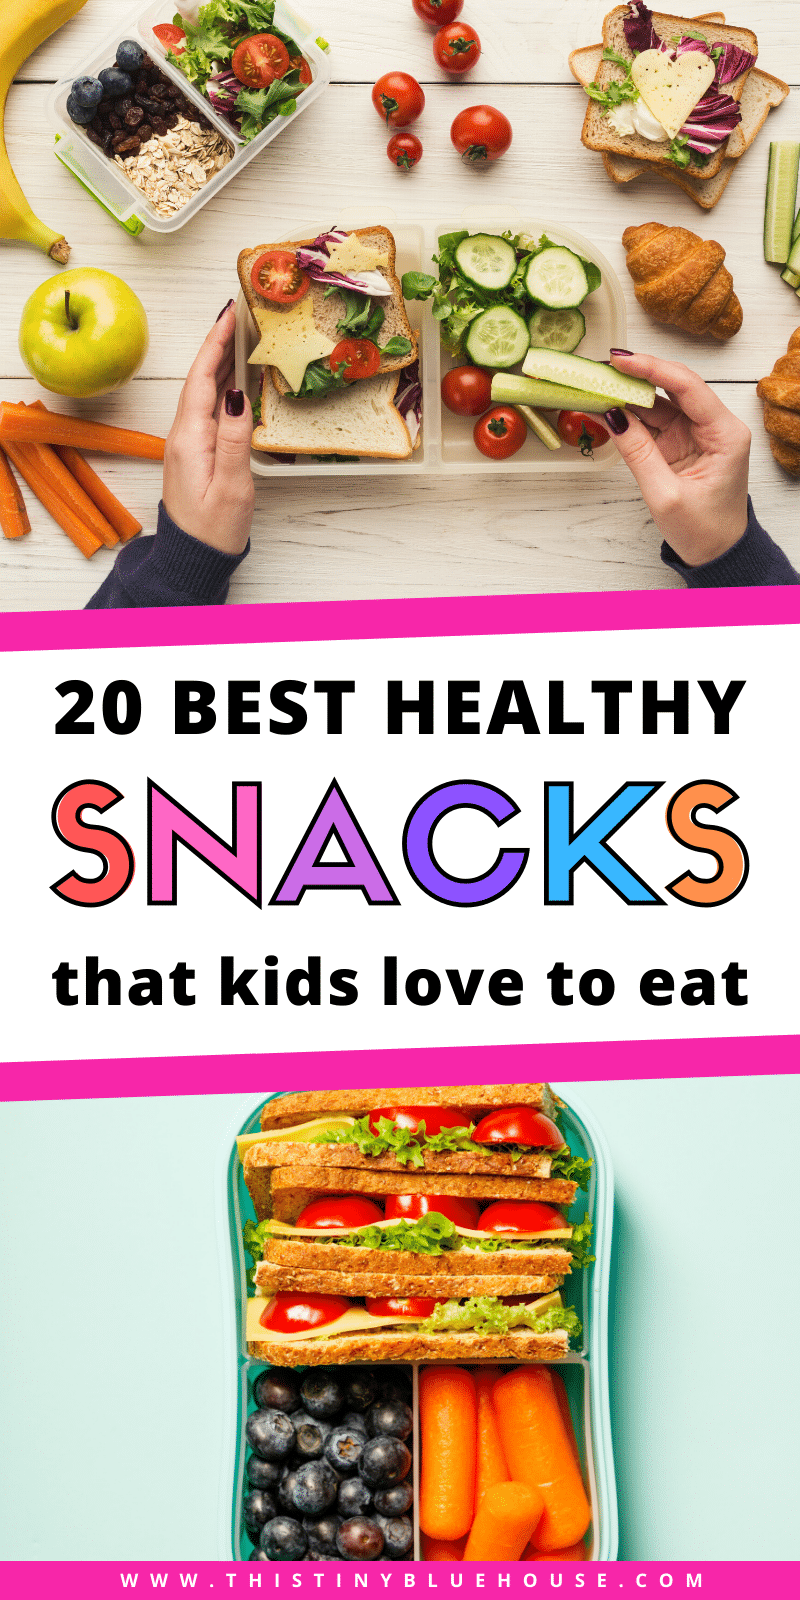 20 After School Snack Ideas that are HEALTHY and budget friendly #snacks #kidsnacks #snackideasforkids #afterschoolsnacks #afterschoolsnackideas #backtoschool #backtoschoolsnacks #schoolsnackideas #schoolunchideas